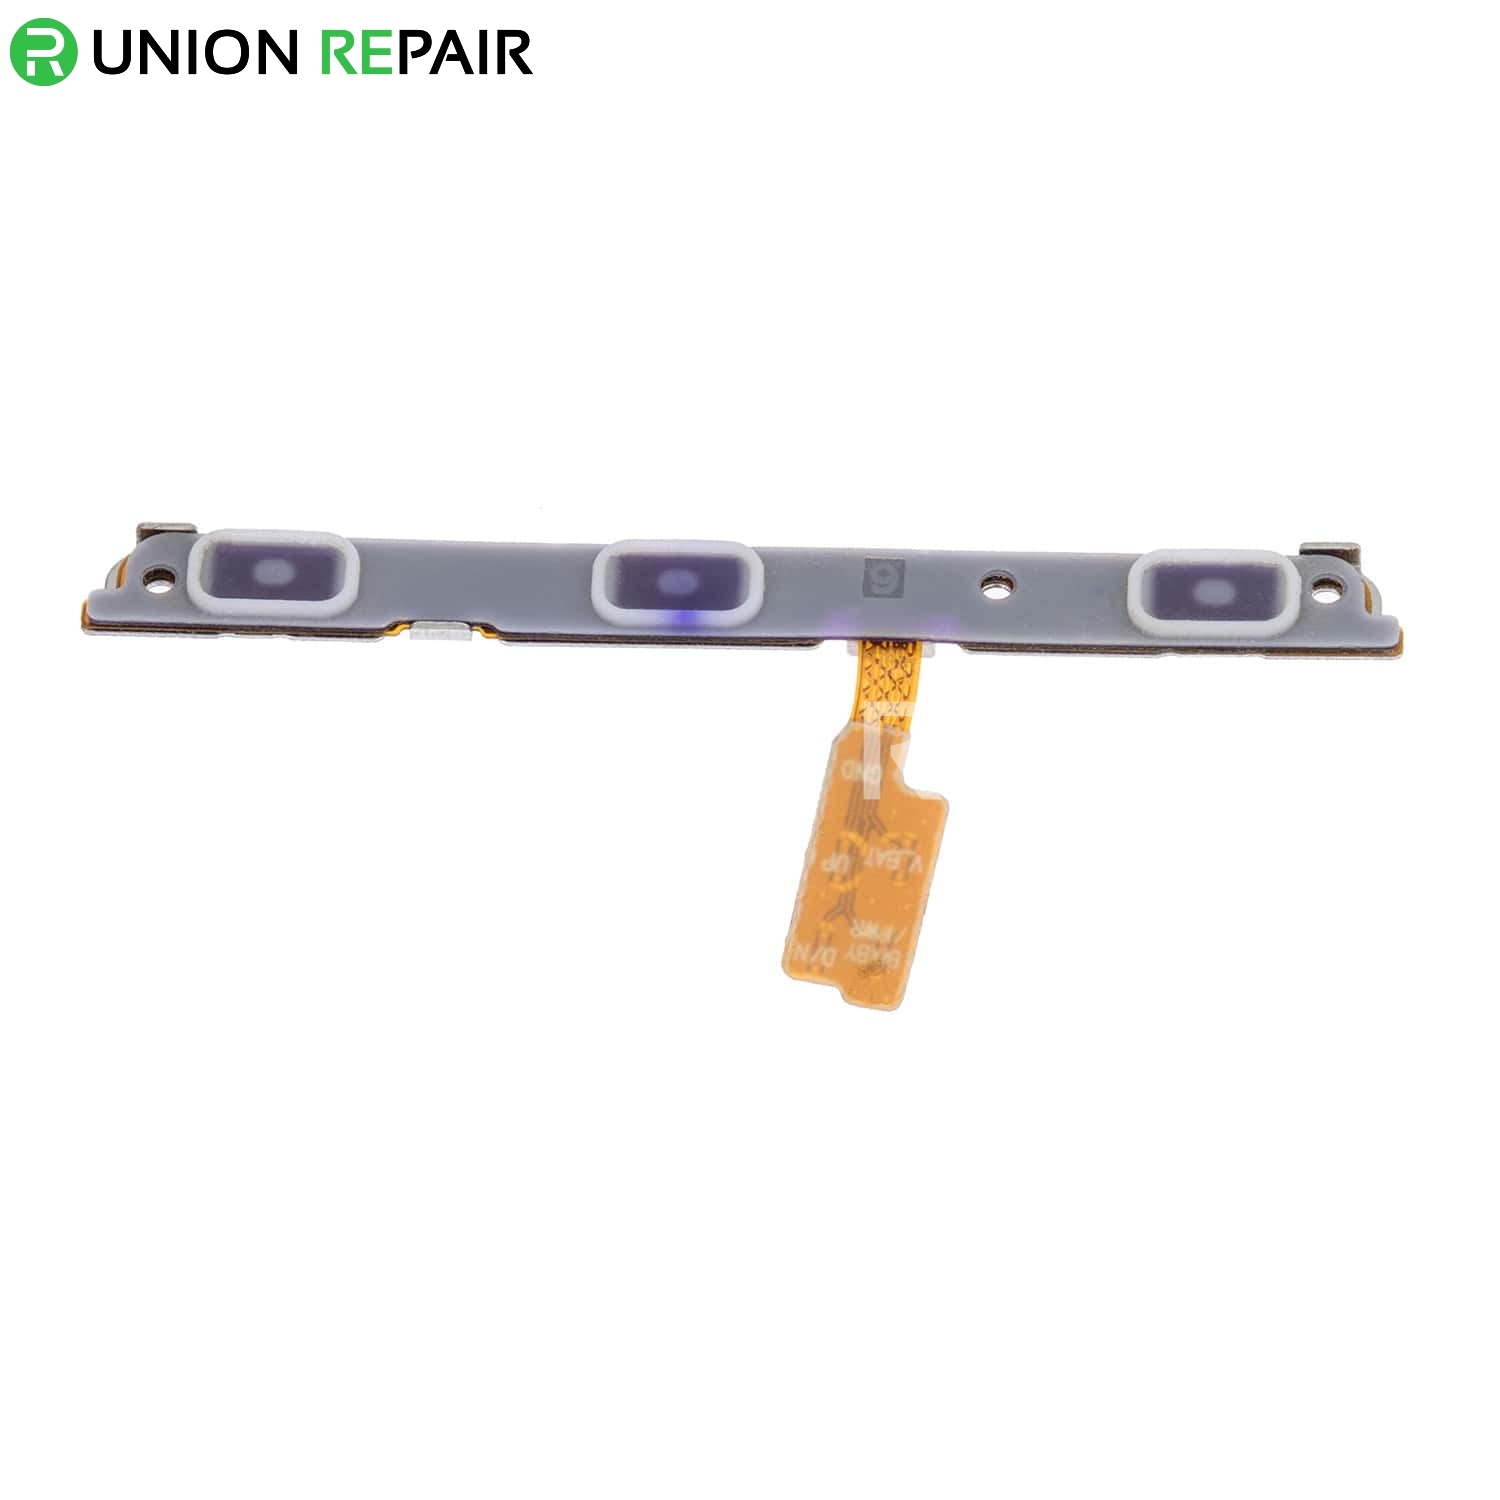 Replacement for Samsung Galaxy Note 20 SM-N981F Power/Volume Button Flex Cable